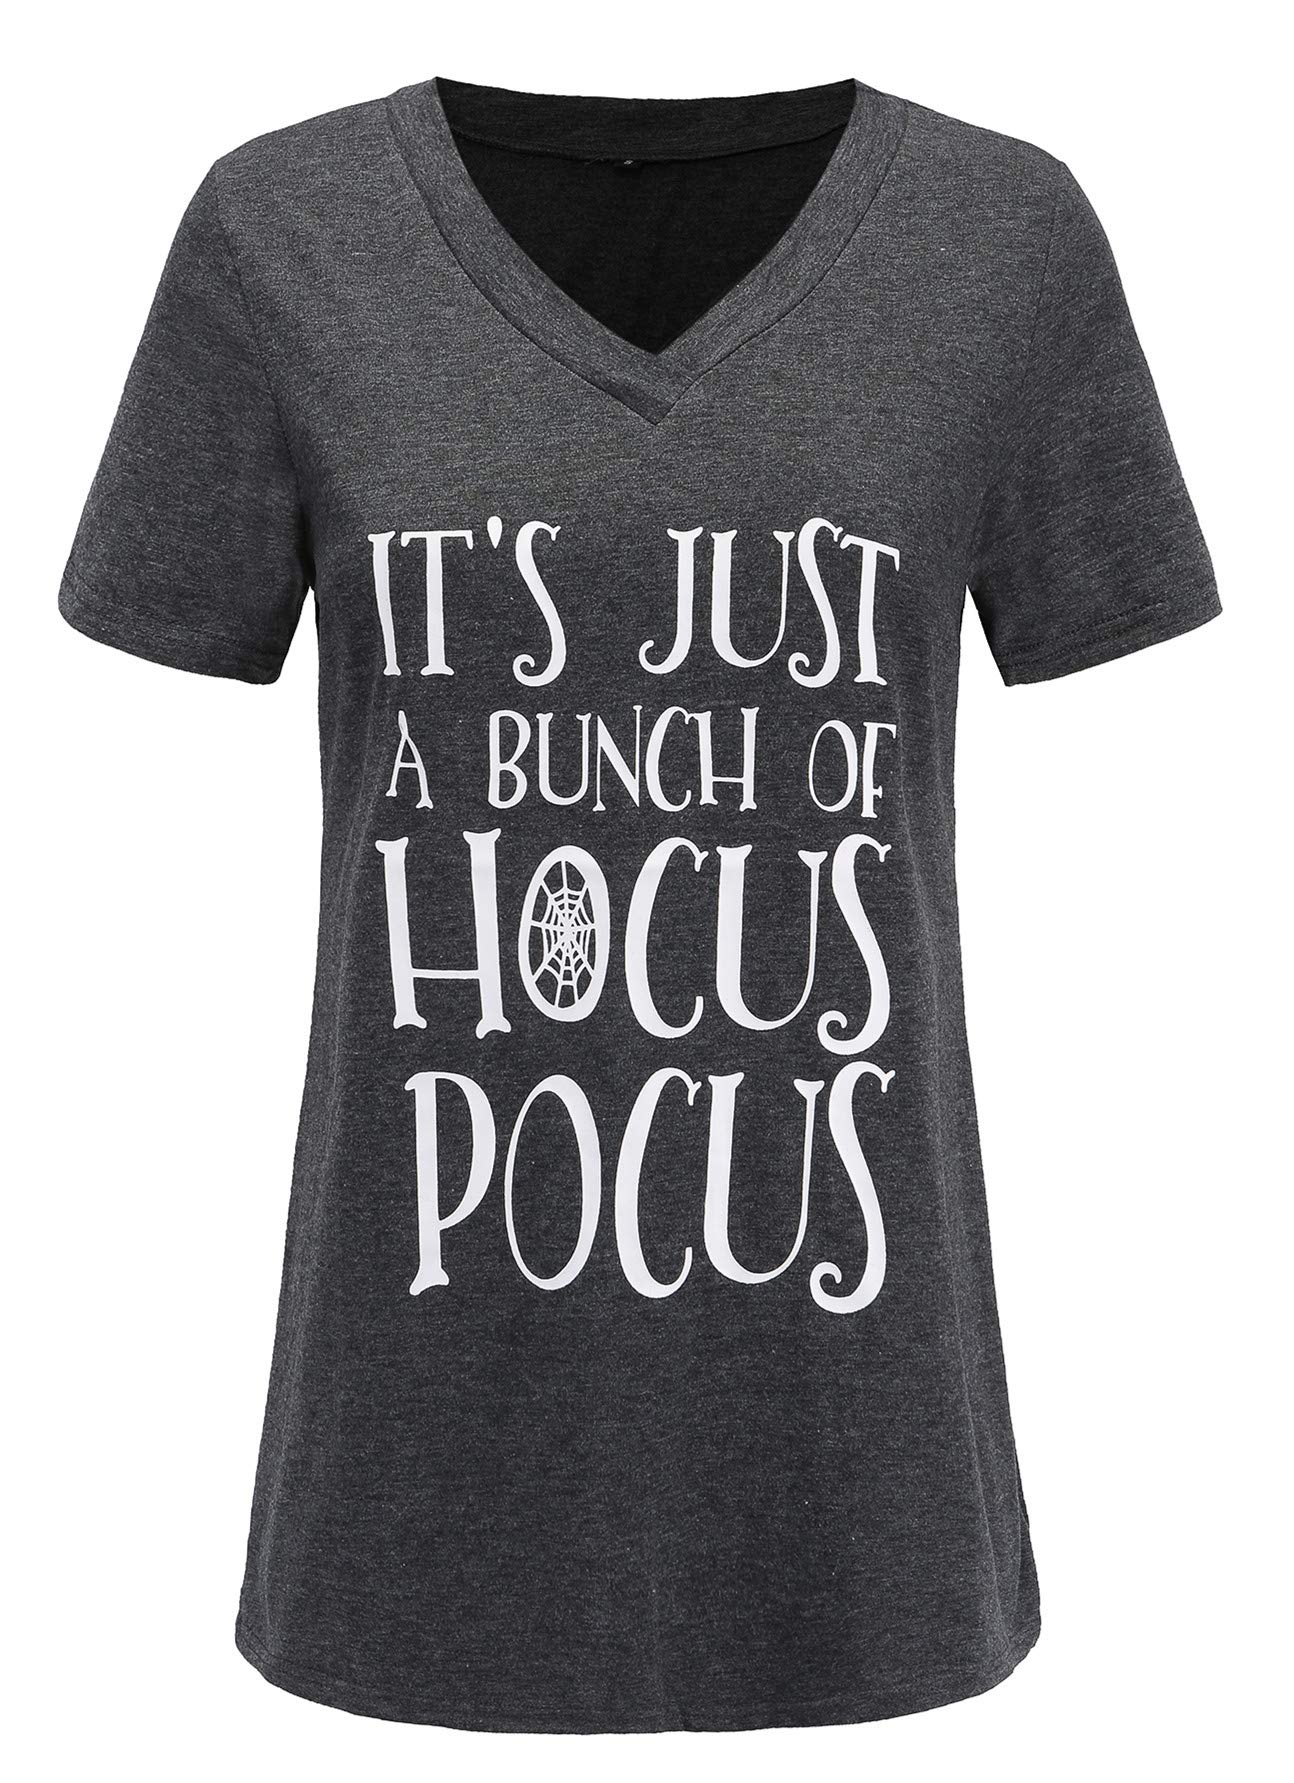 Women's Plus Size Letter Print It's Just a Bunch of Hocus Pocus Tee Funny Halloween Trendy T Shirt Tops Tee Blouse 2X Gray 18 20 Plus